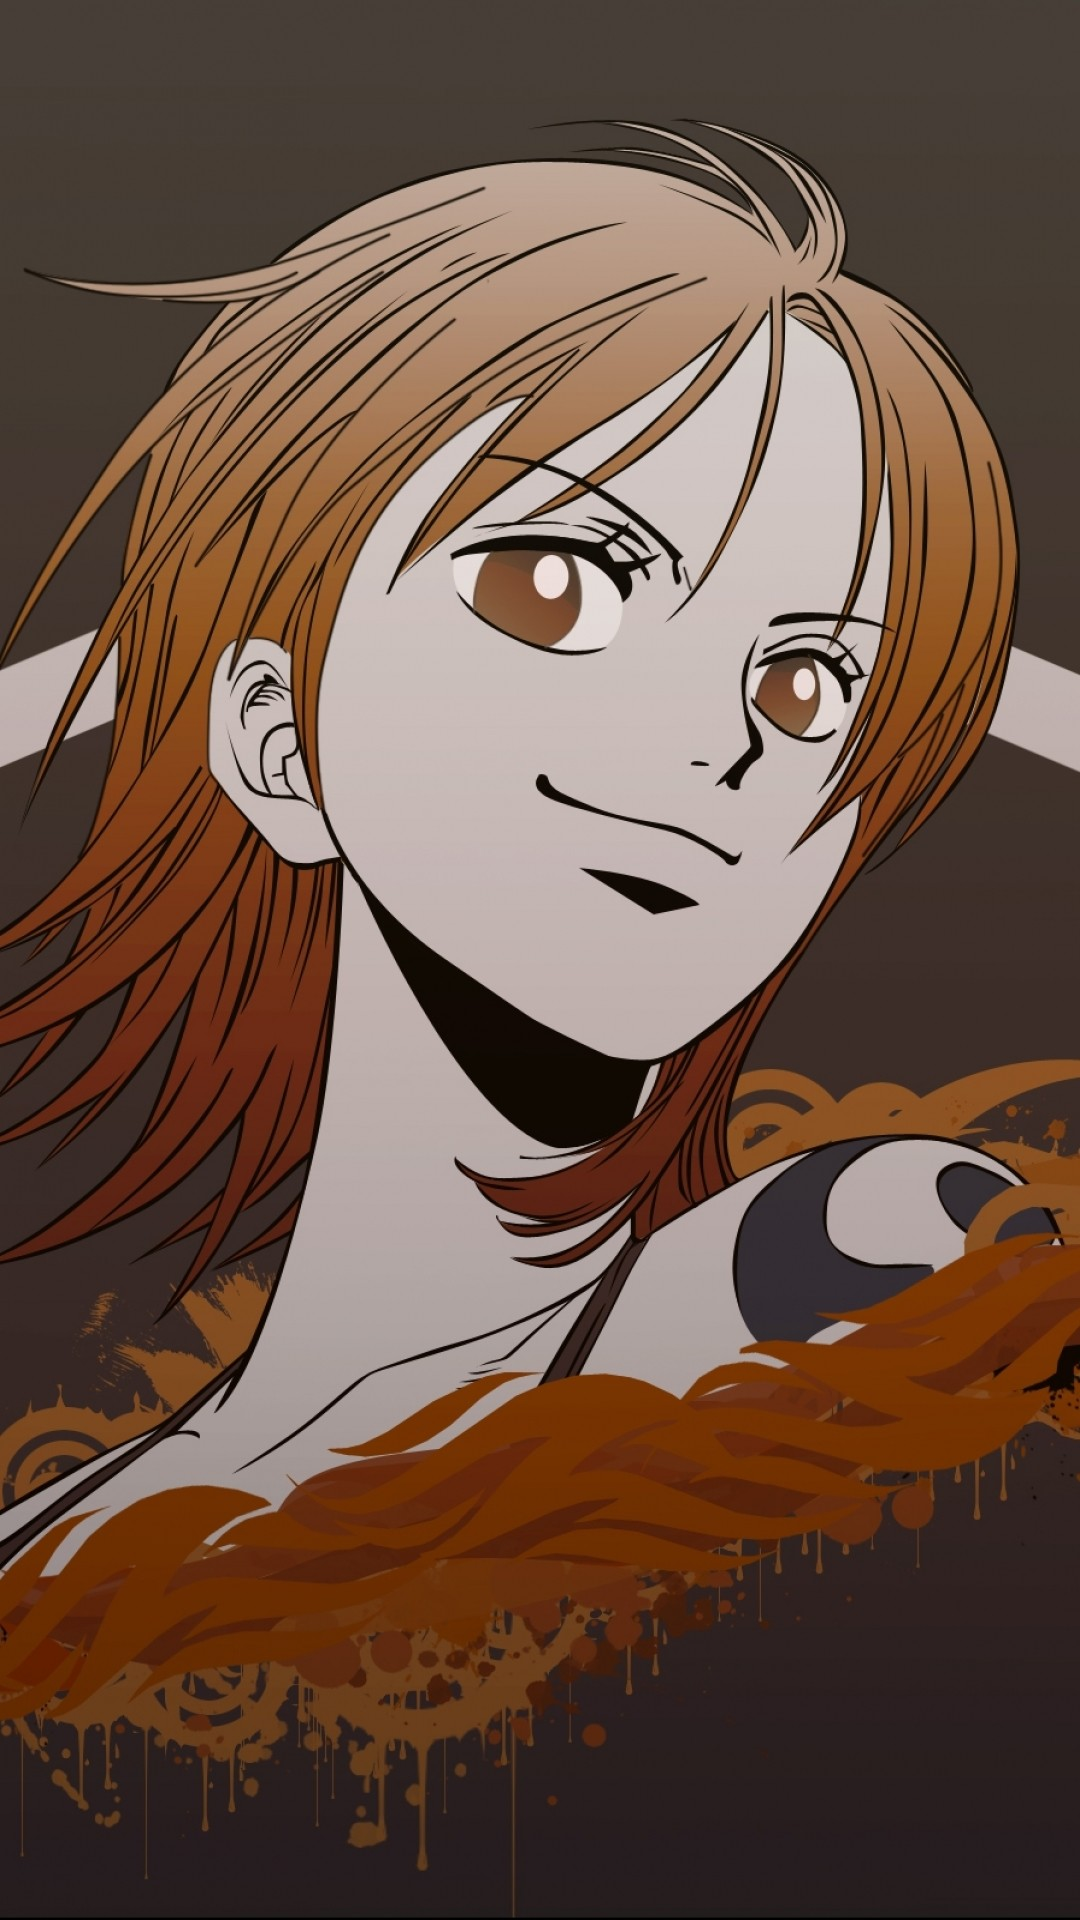 1080x1920 Anime One Piece Nami. Wallpaper 554044